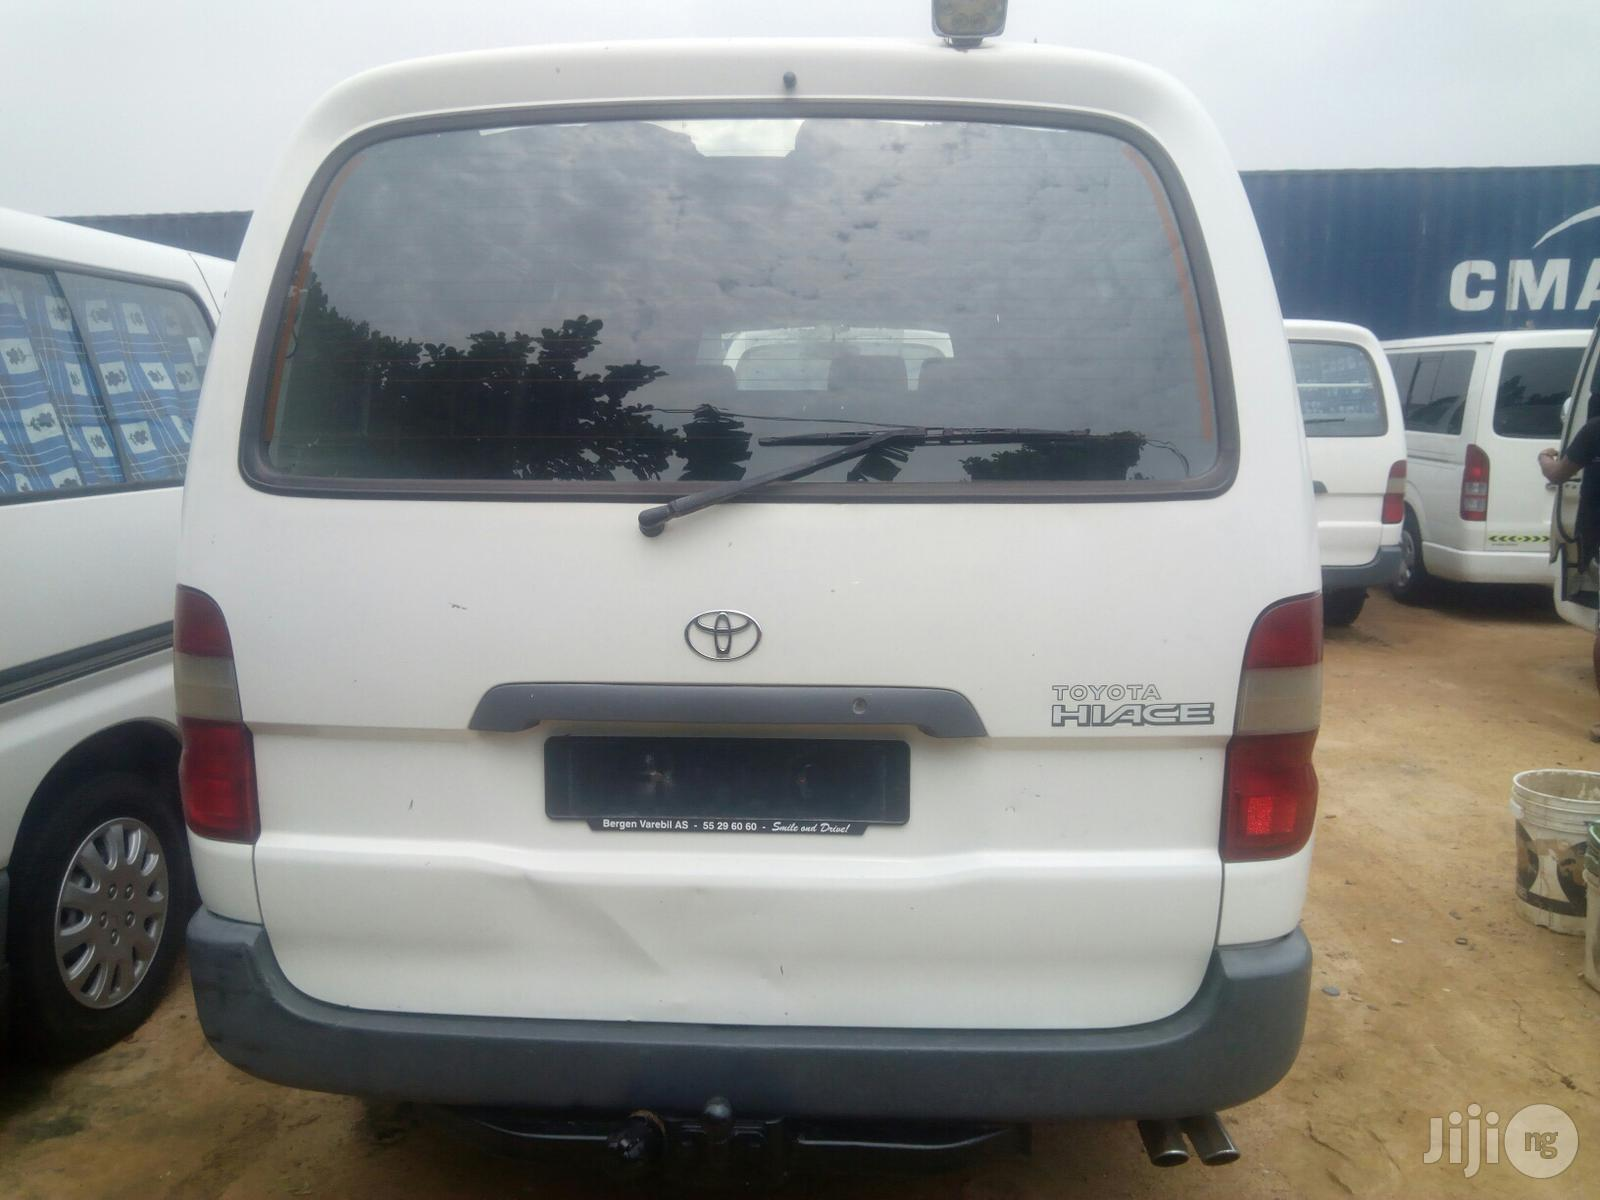 Toyota Hiace 2000 White | Buses & Microbuses for sale in Lagos State, Nigeria